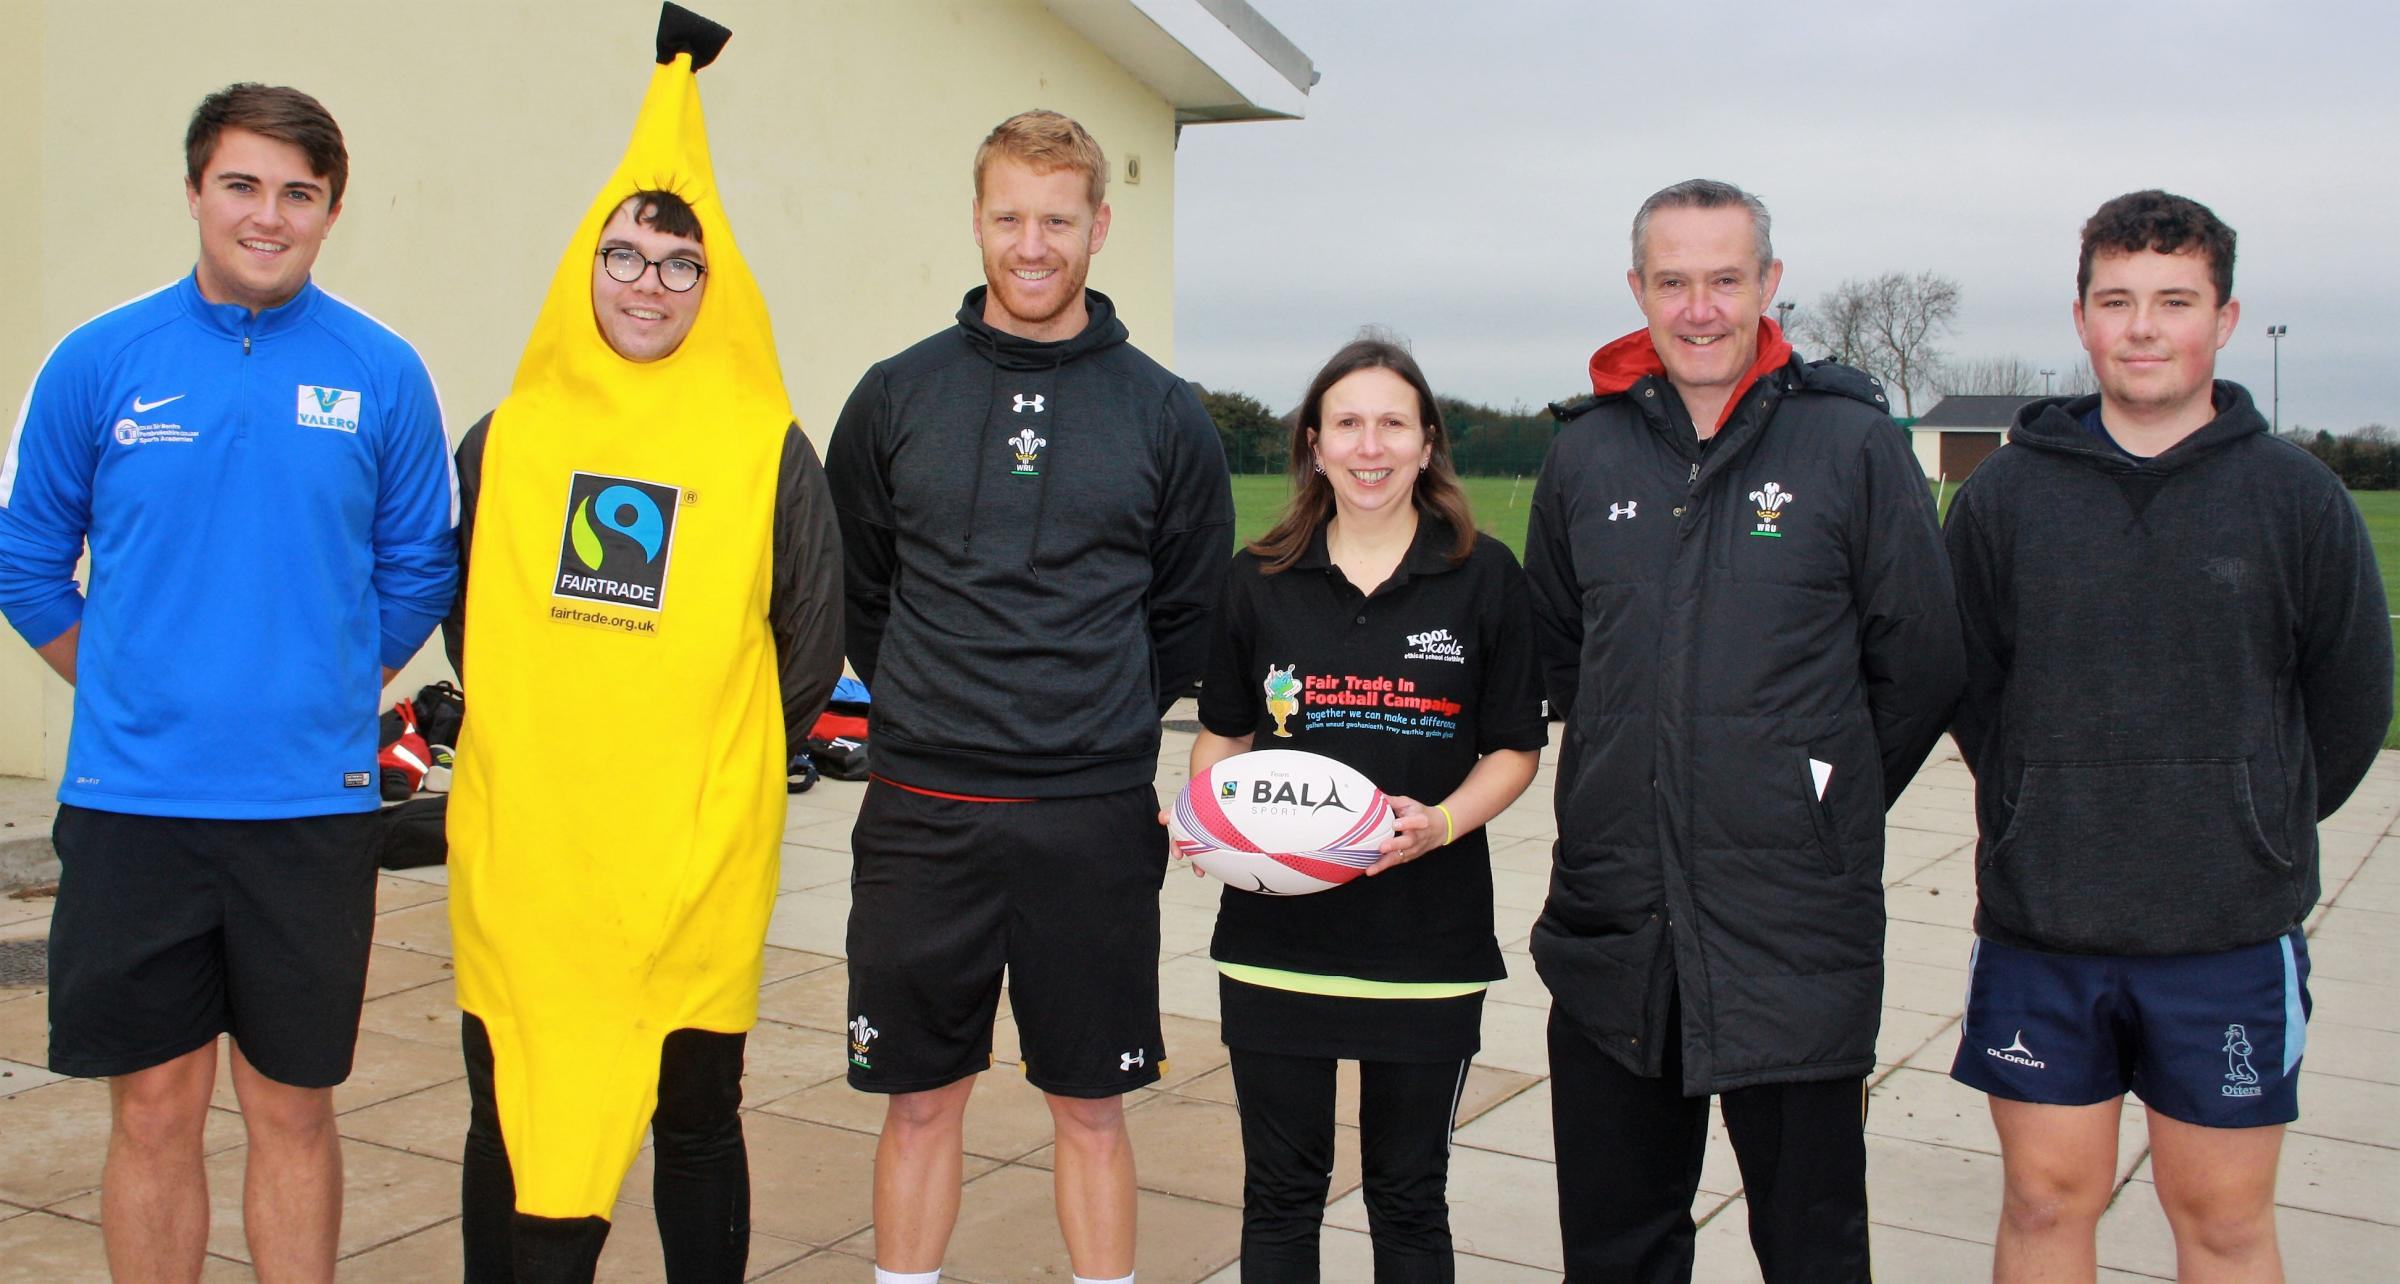 Lloyd Phillips and Mike King of the WRU, joined by Sharron Hardwick and festival volunteers and referees.